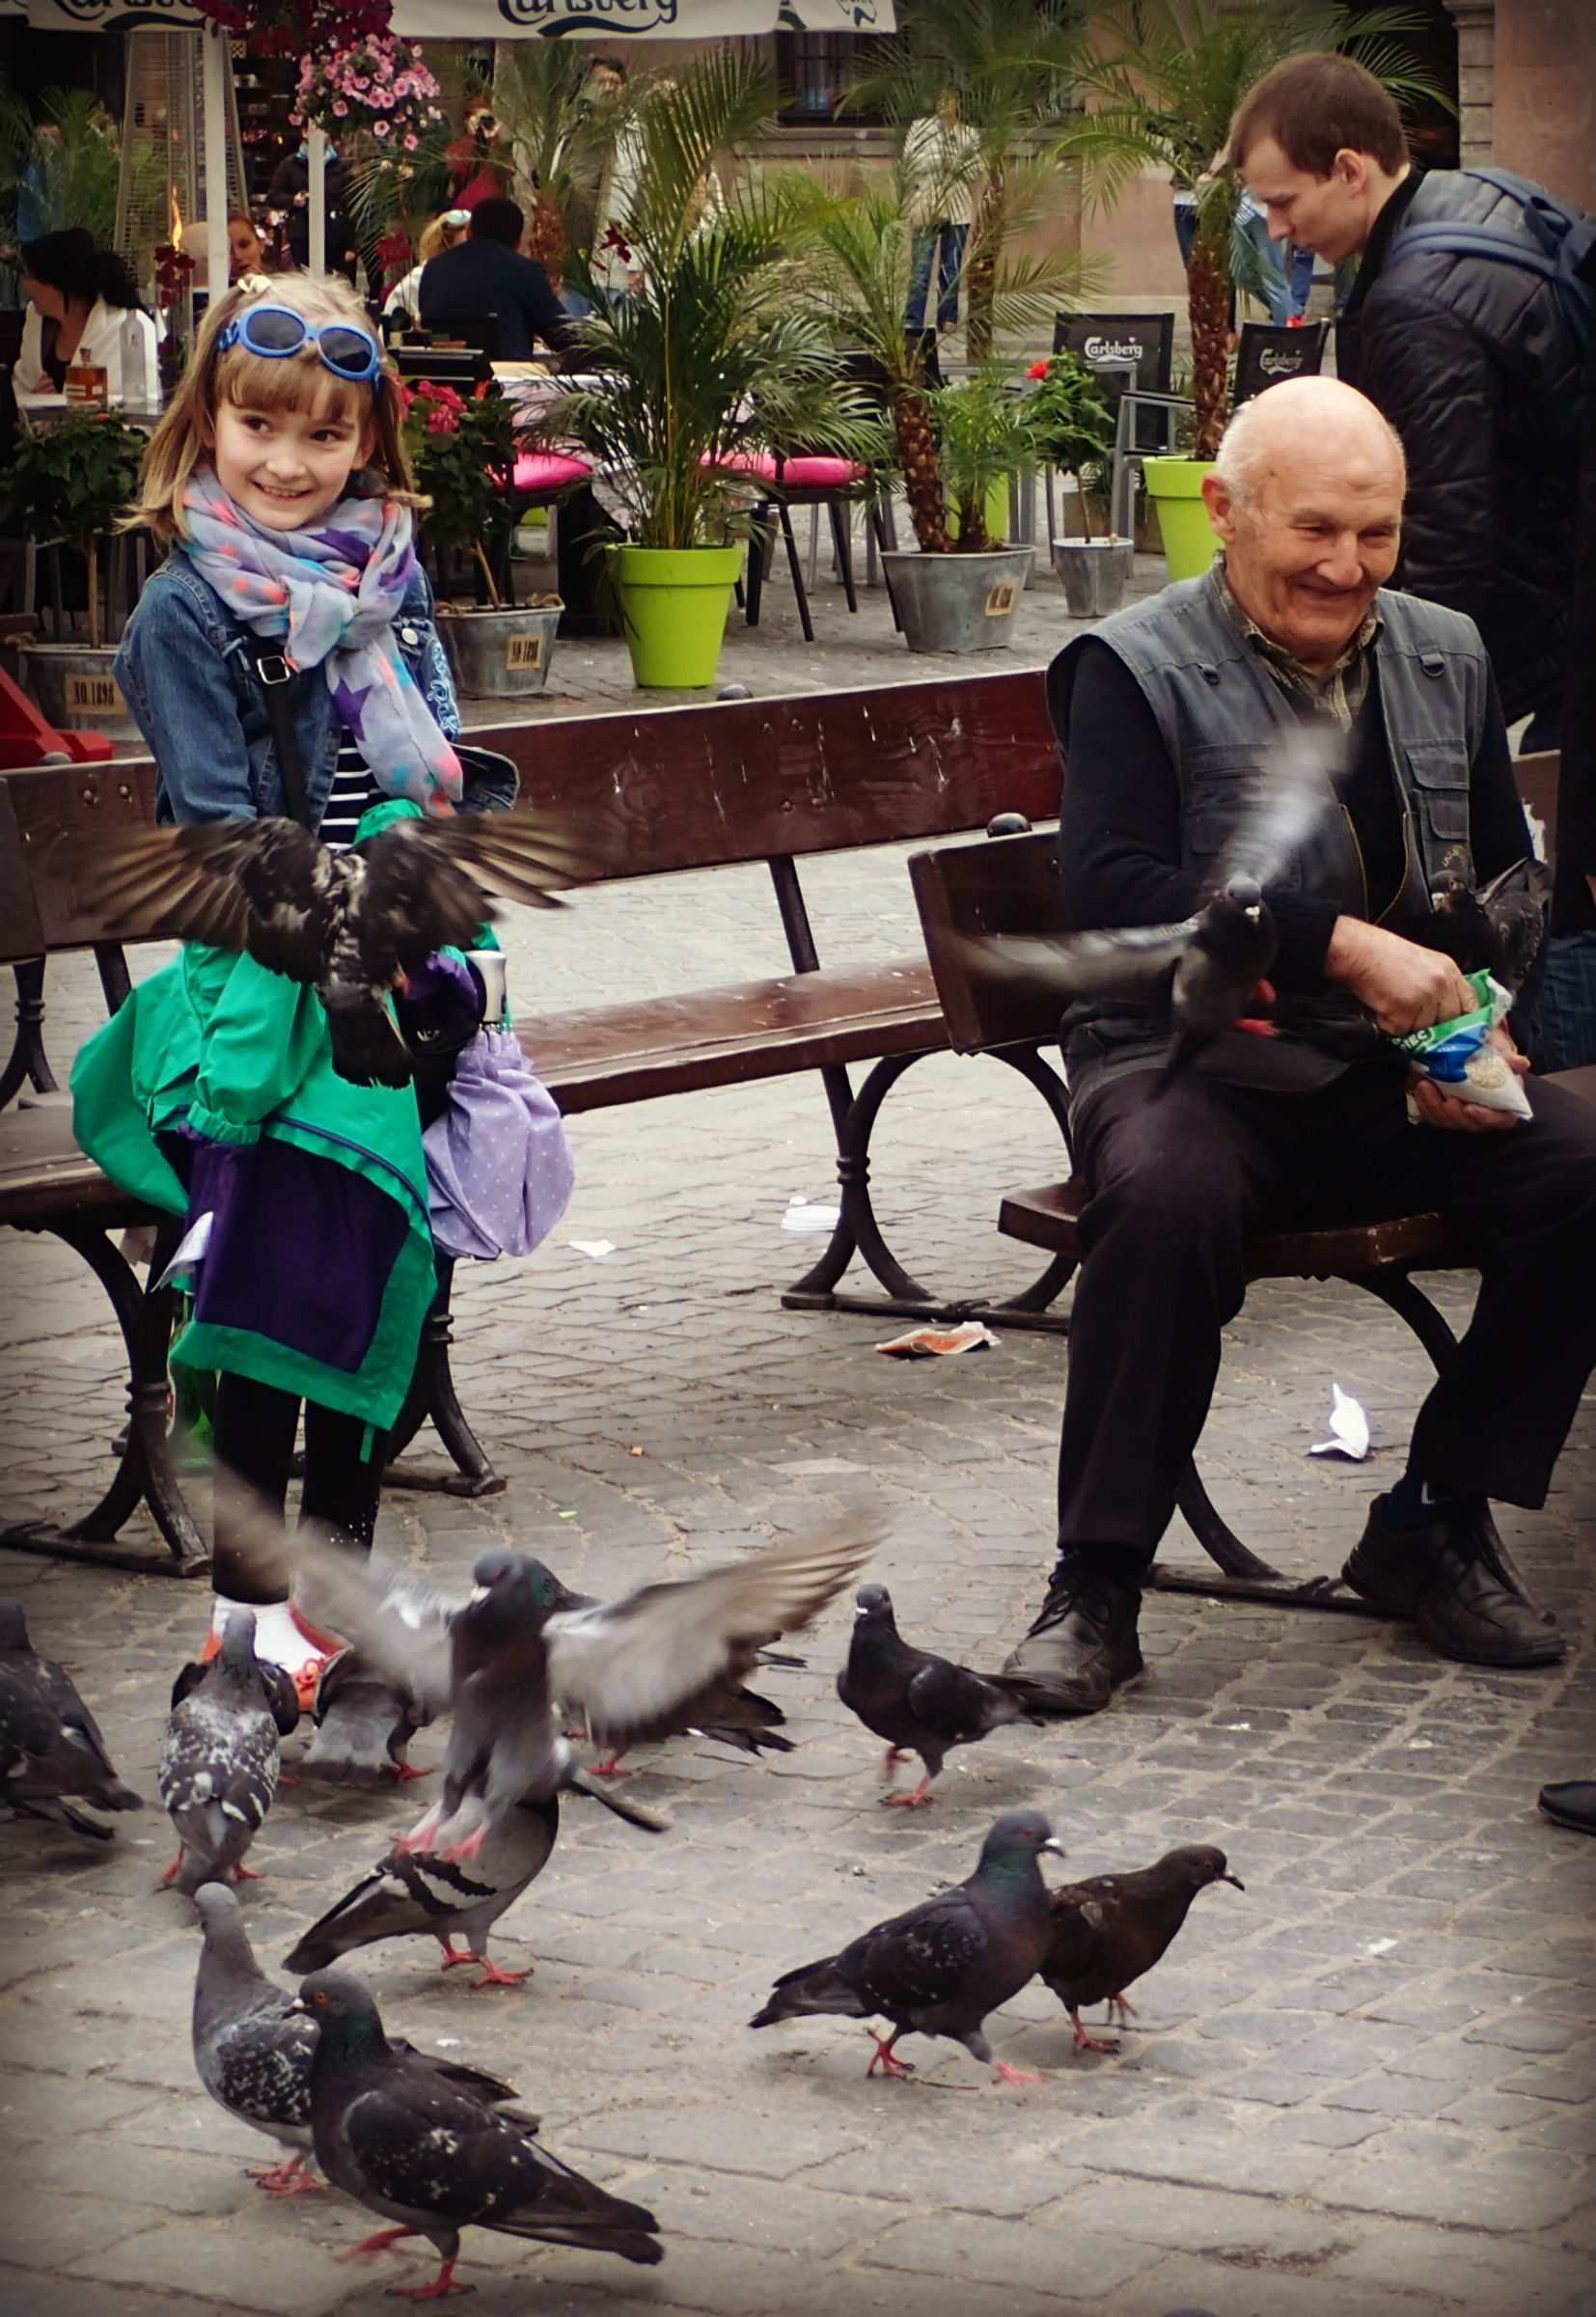 Lord Governor of the Pigeons  This gentleman ruled a large flock of pigeons in the center of Warsaw Old Town.  He was so full of glee to introduce his bird community to everyone. He placed just a few breadcrumbs in the little girl's hand and she started grinning ear-to-ear because of all the flying pigeons. Her enjoyment fueled his enjoyment and it was a lovely sight to see.  Side note: Did you know a group of flying pigeons is called a kit?